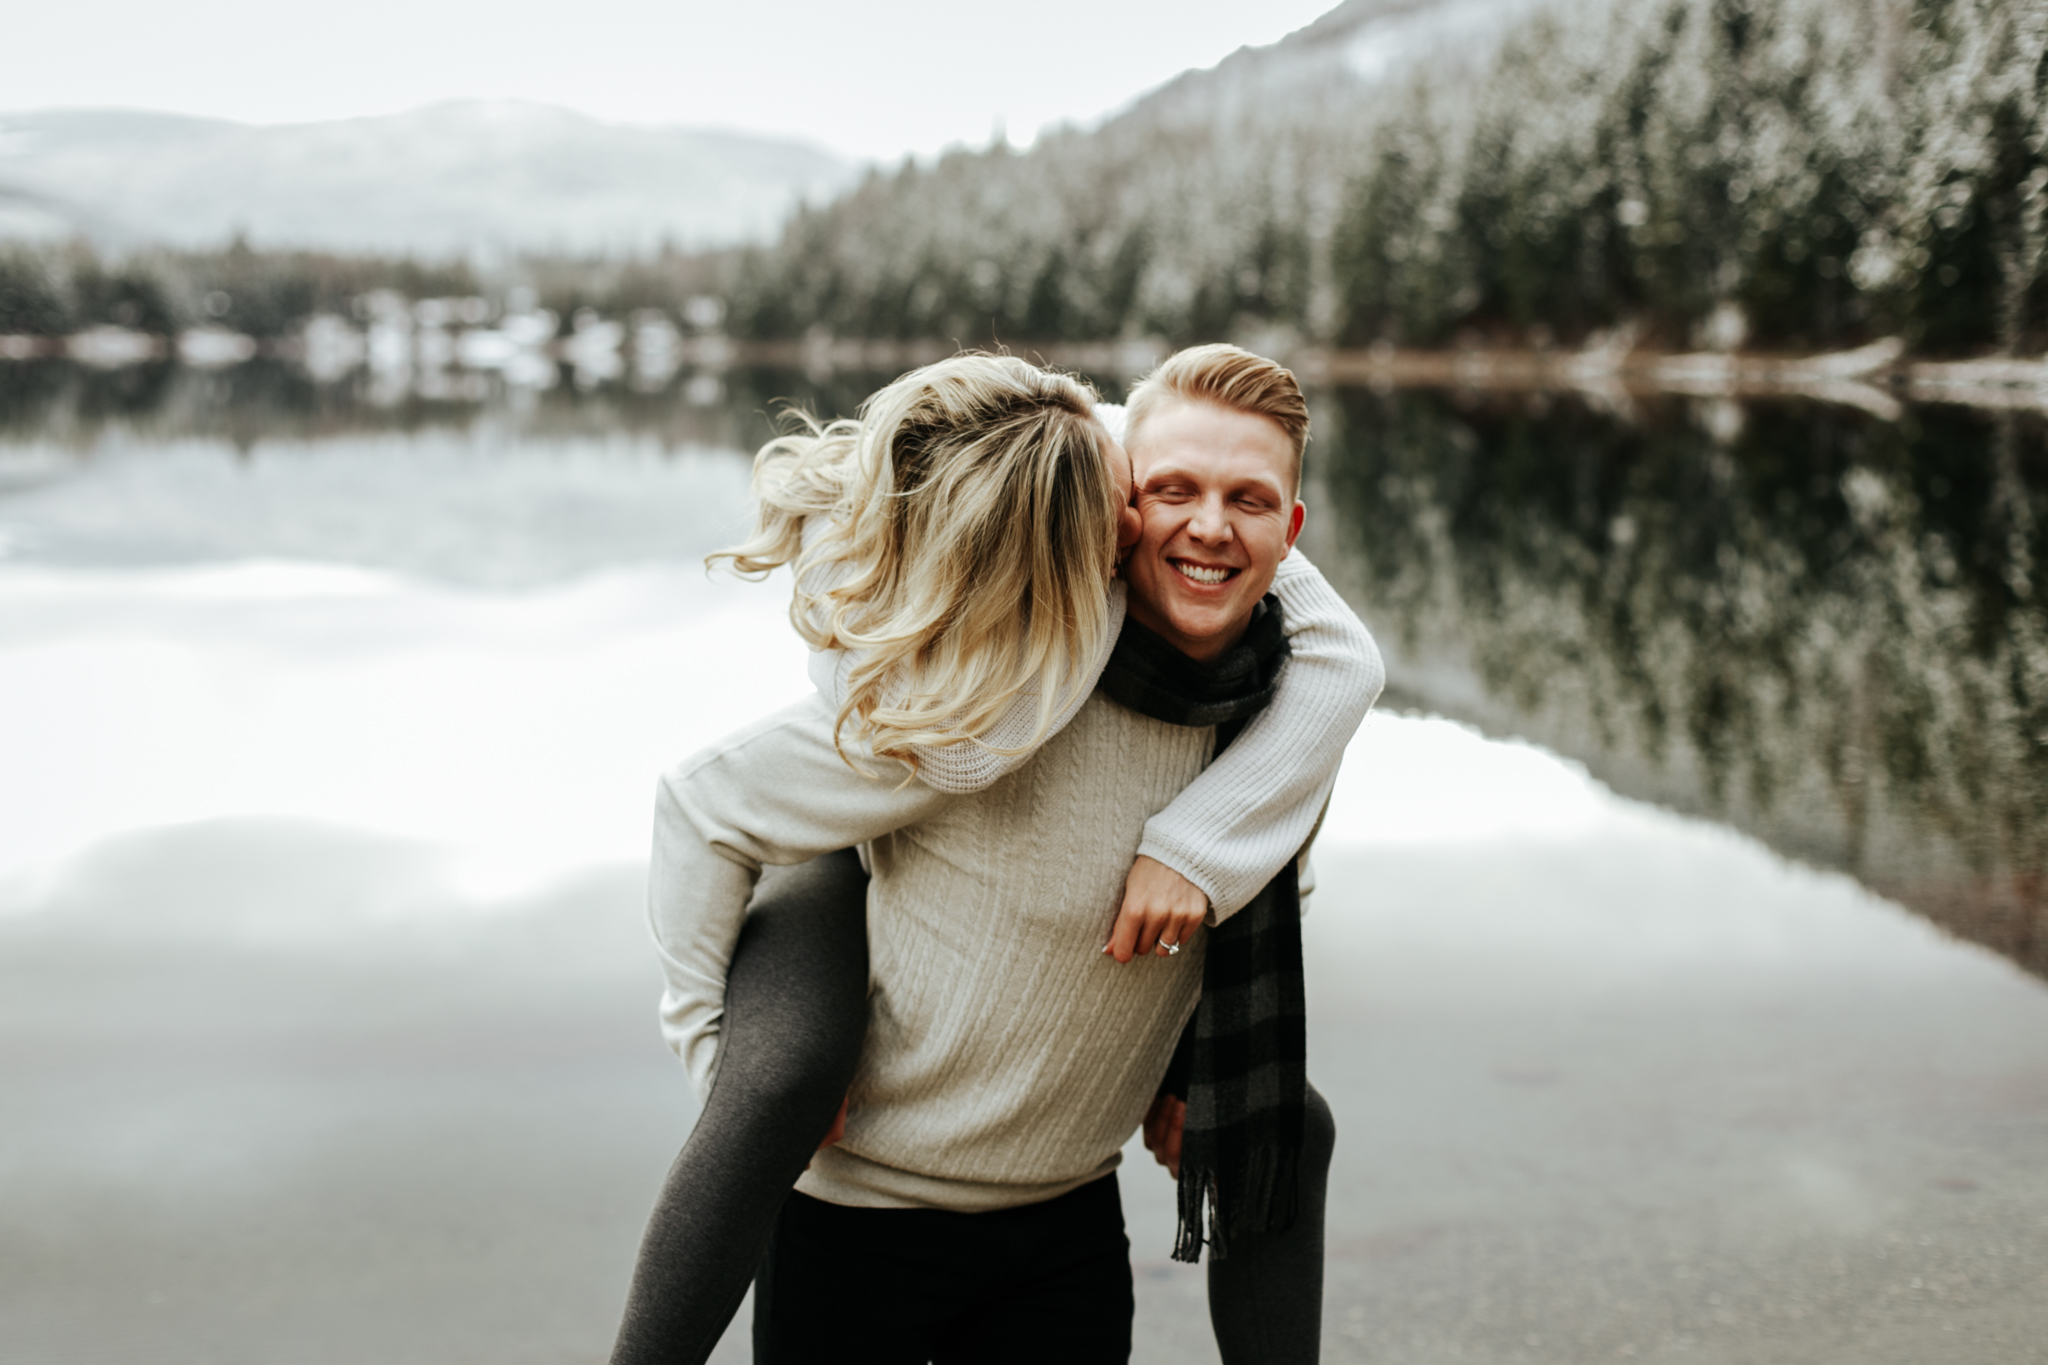 love-and-be-loved-photography-mountain-engagement-ashlyn-rob-perfect-fit-4-u-photo-image-picture-17.jpg